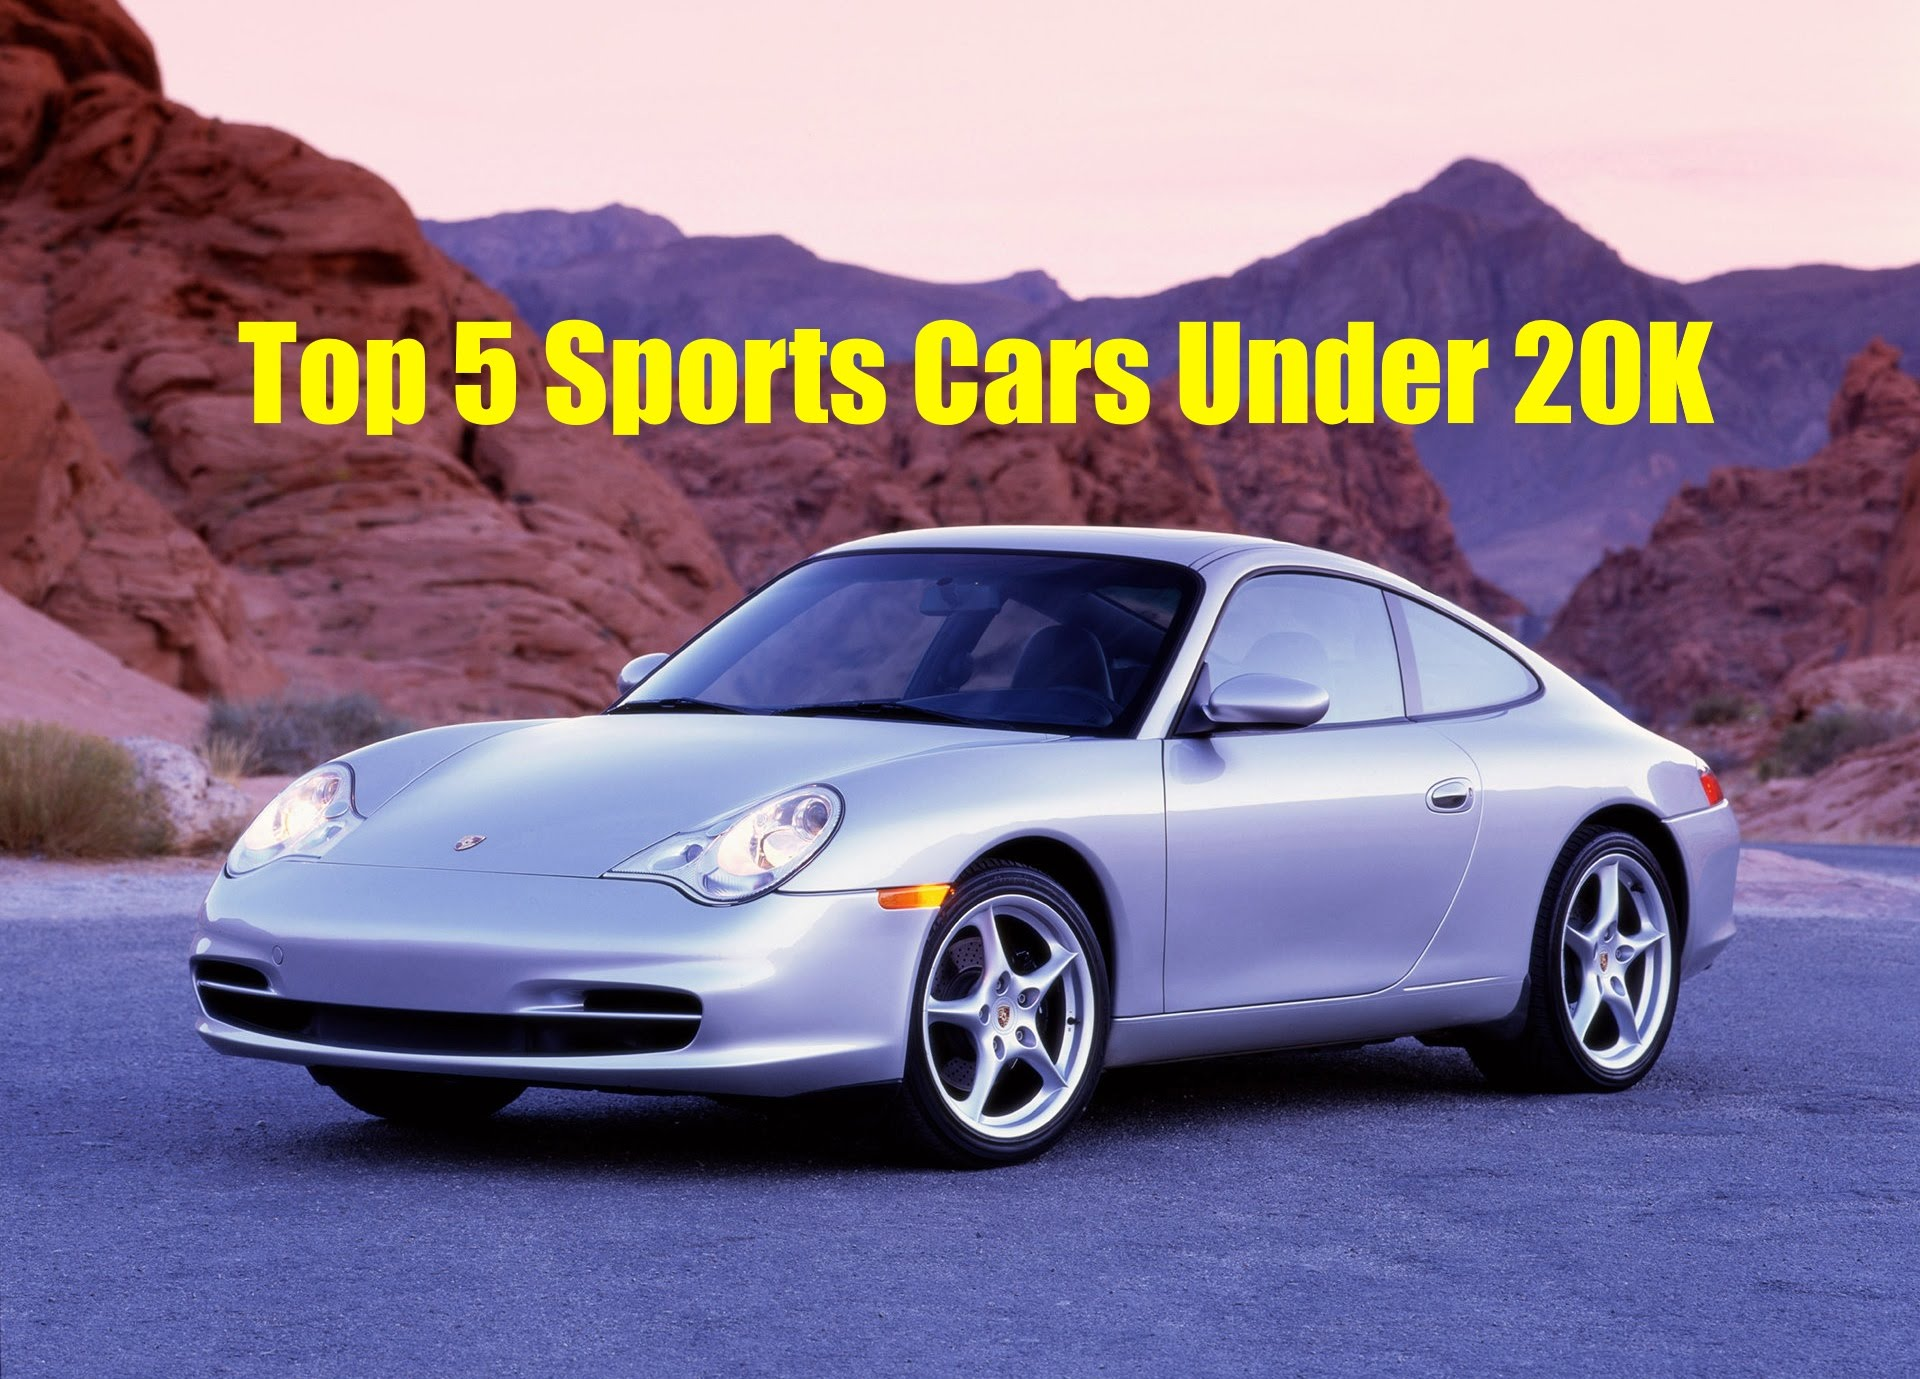 the top 5 best sports cars under 20k